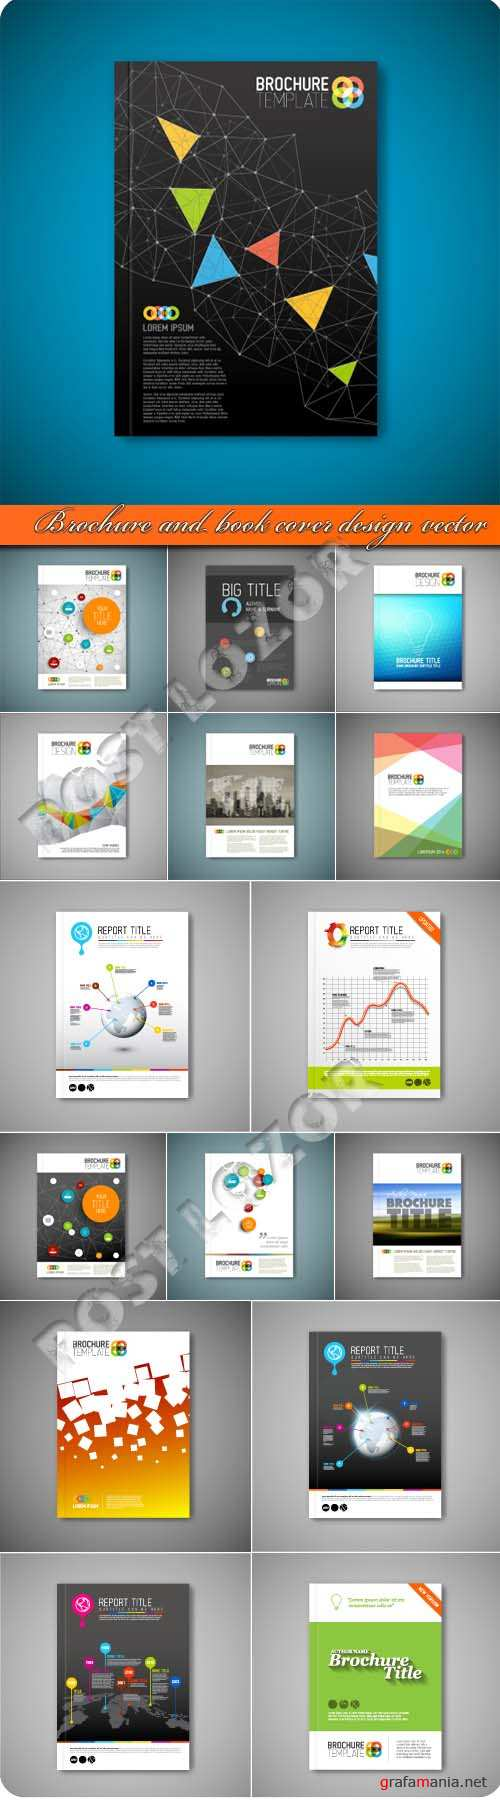 Brochure and book cover design vector